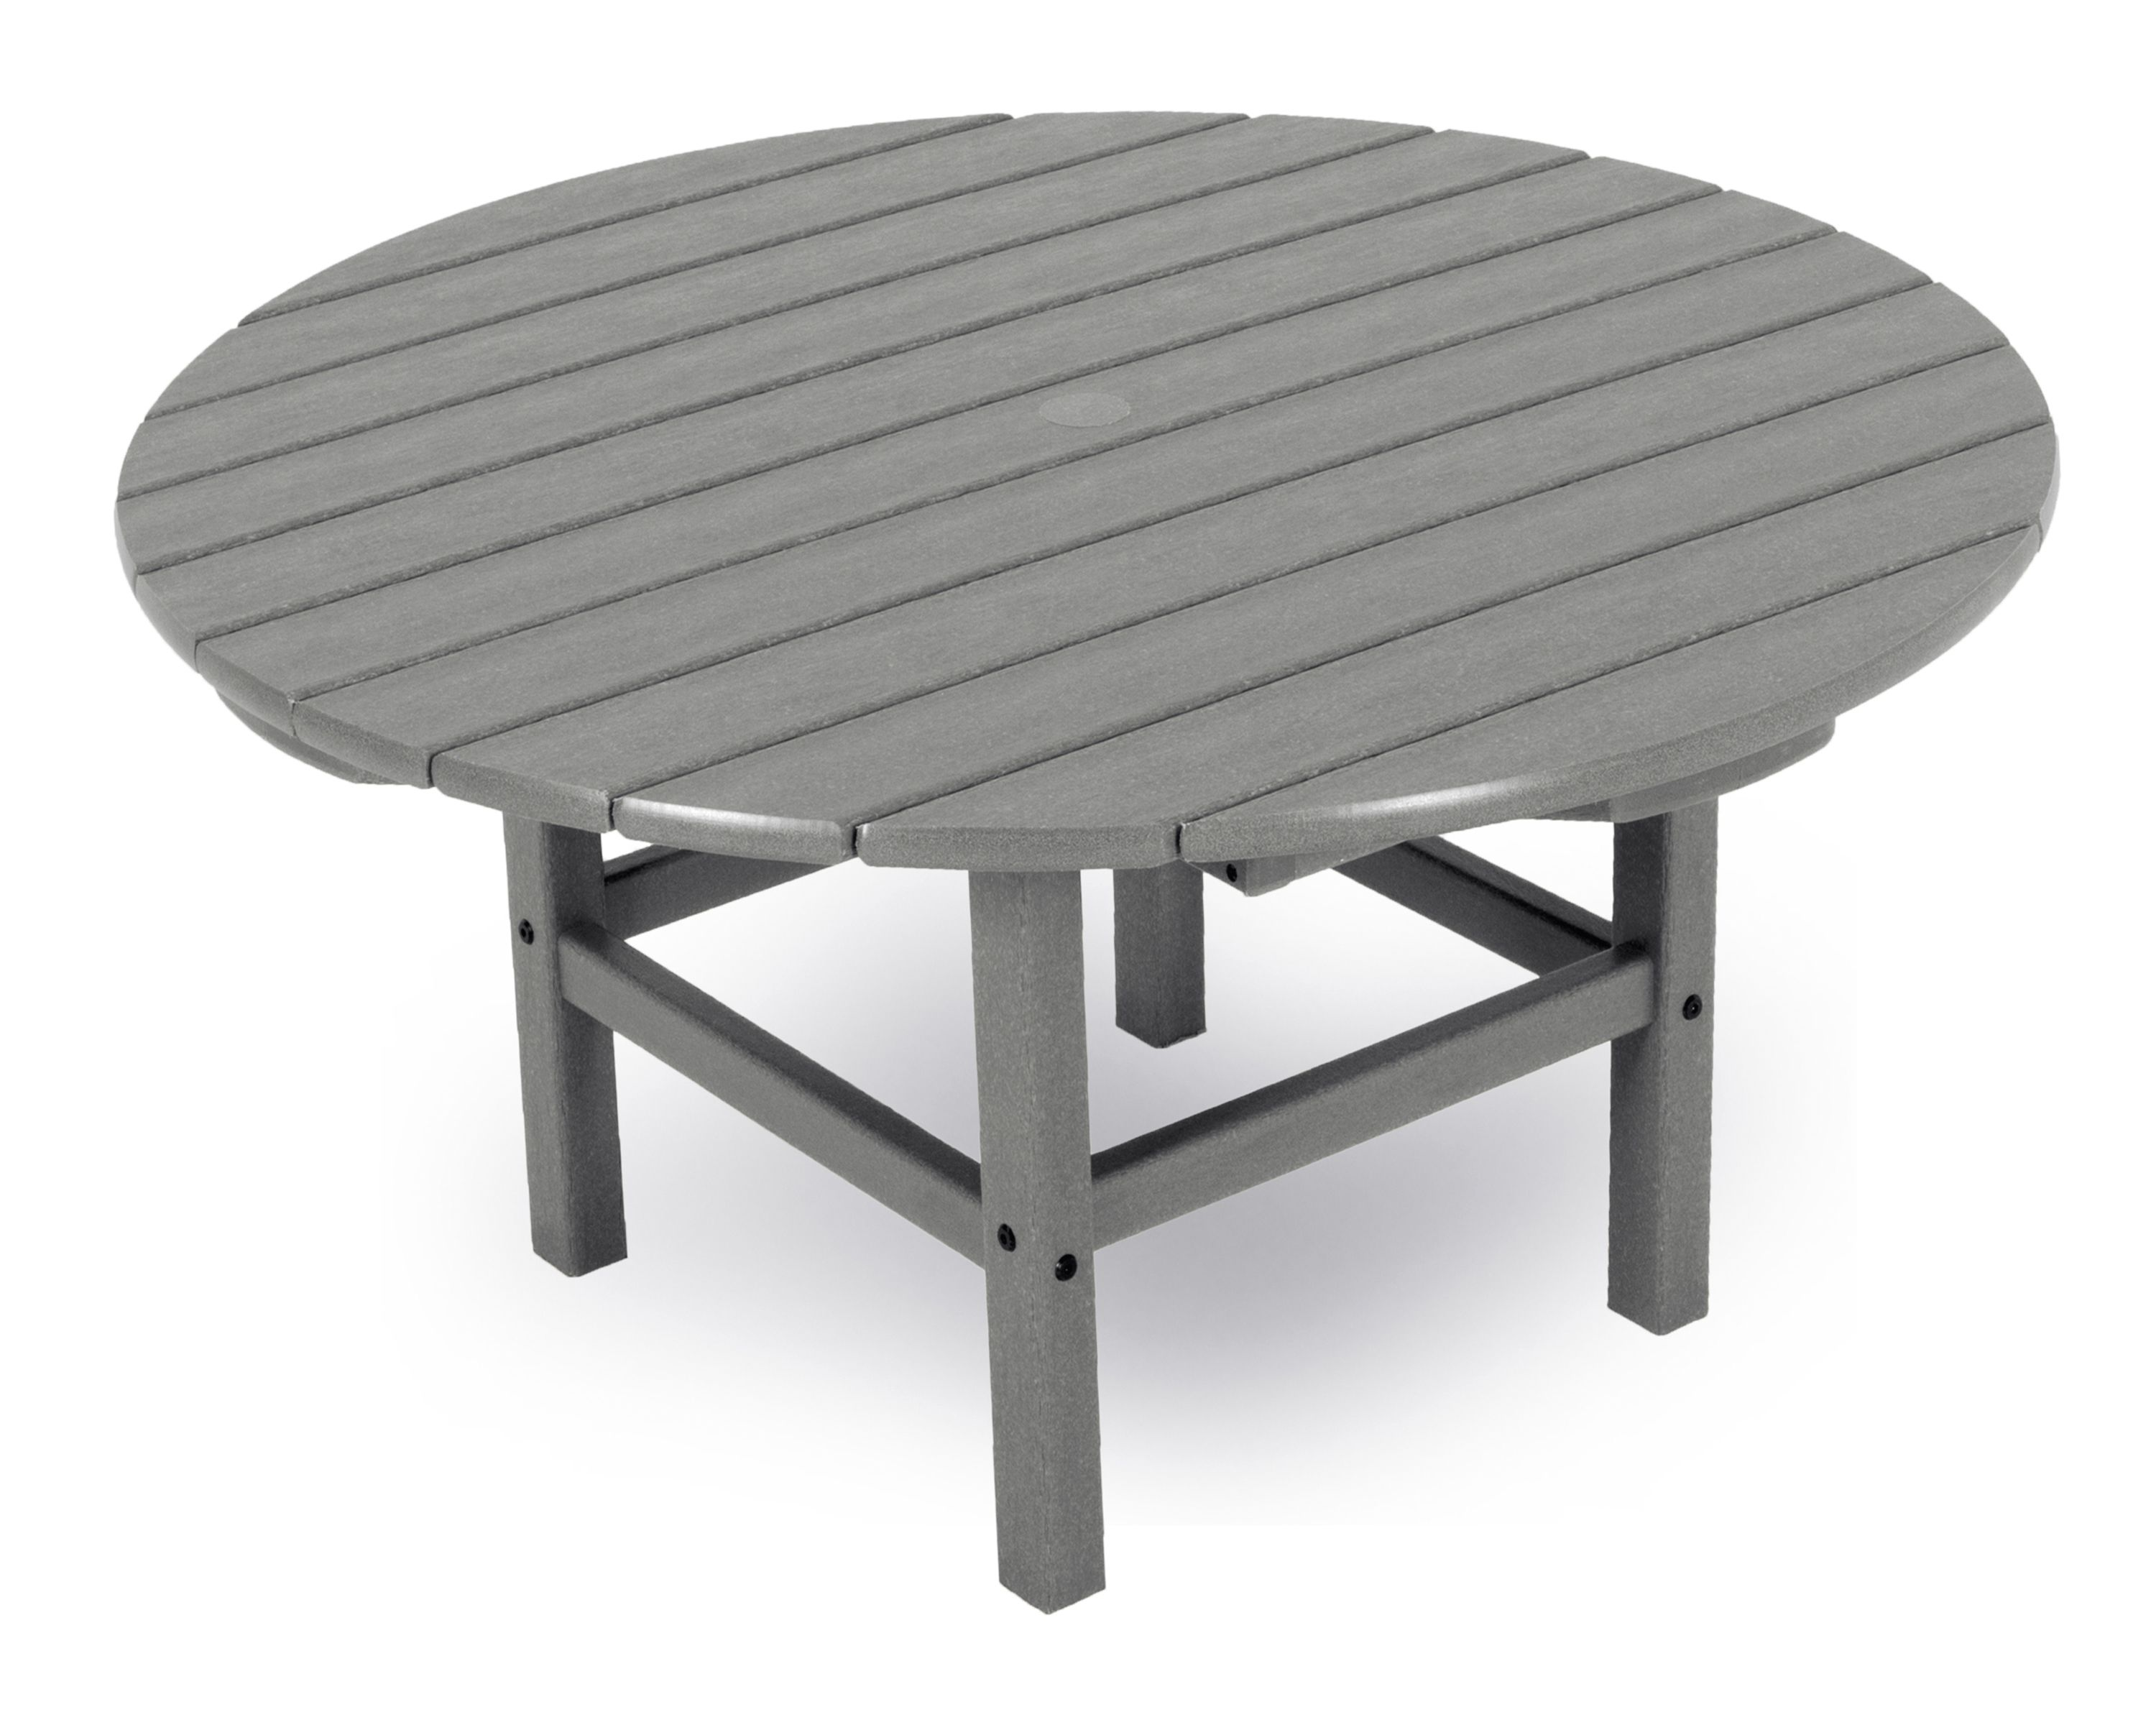 Round 38 Conversation Table In 2021 Polywood Furniture Outdoor Tables And Chairs Outdoor Tables [ 2400 x 3000 Pixel ]